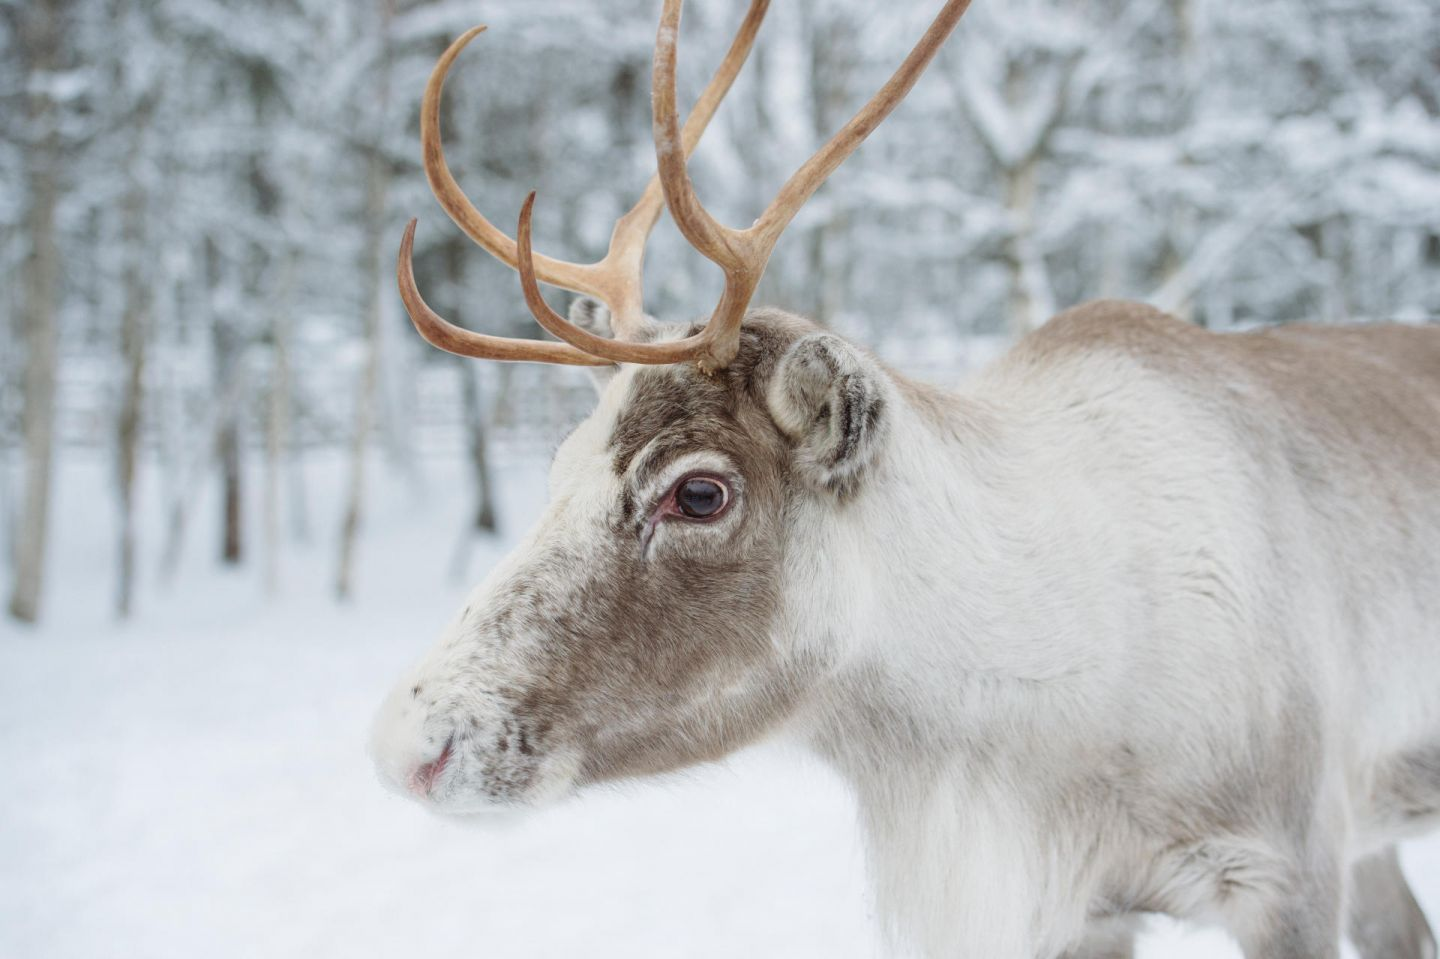 Reindeer by the road in Rovaniemi, Lapland